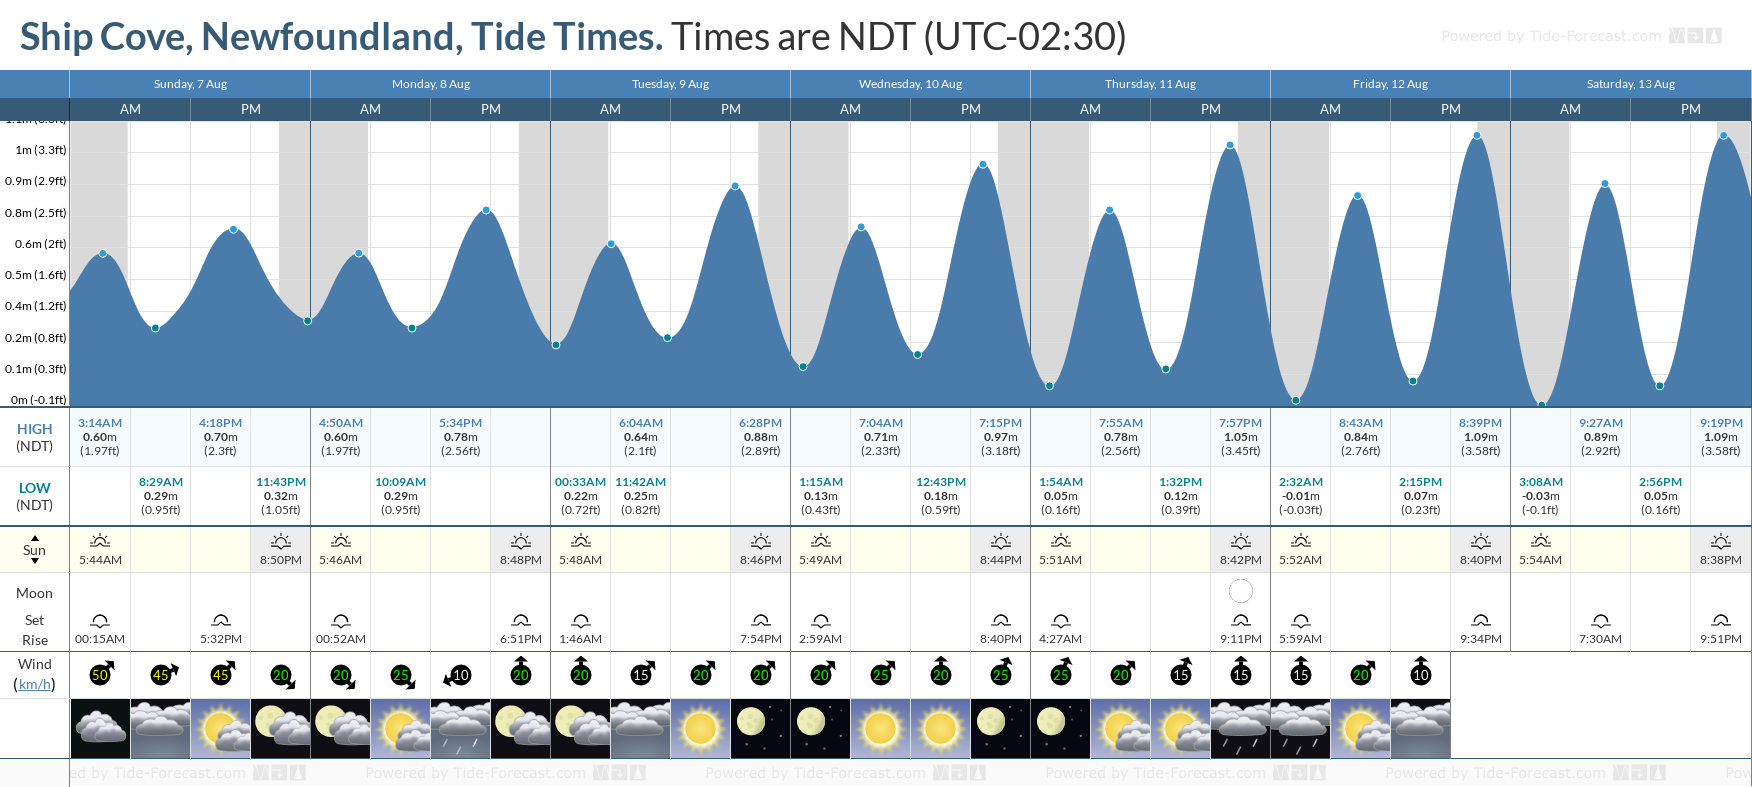 Ship Cove, Newfoundland Tide Chart including high and low tide tide times for the next 7 days